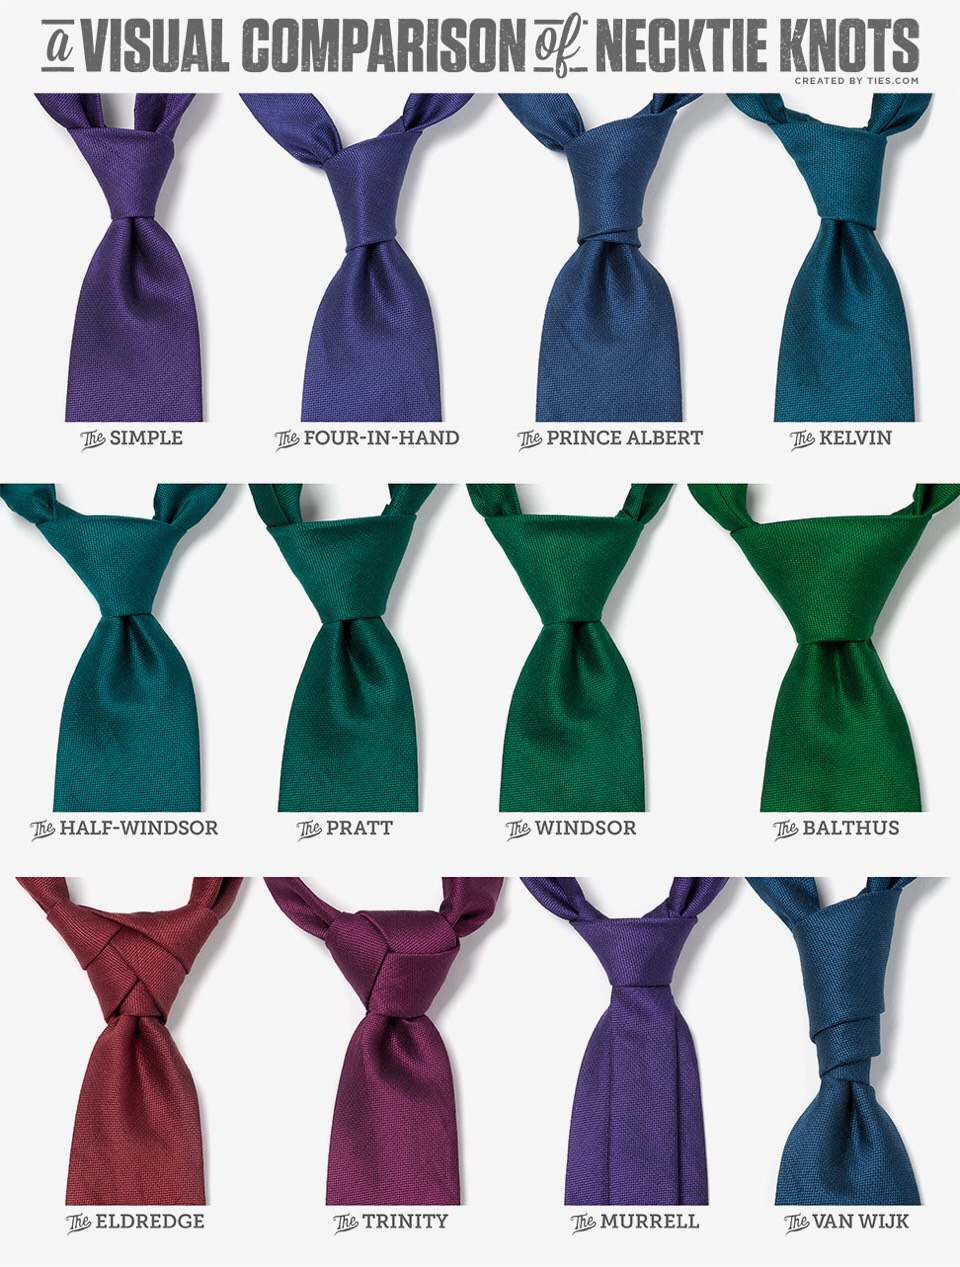 And there ya go!  18 wonderful ways to tie a necktie! 👔👍🏾